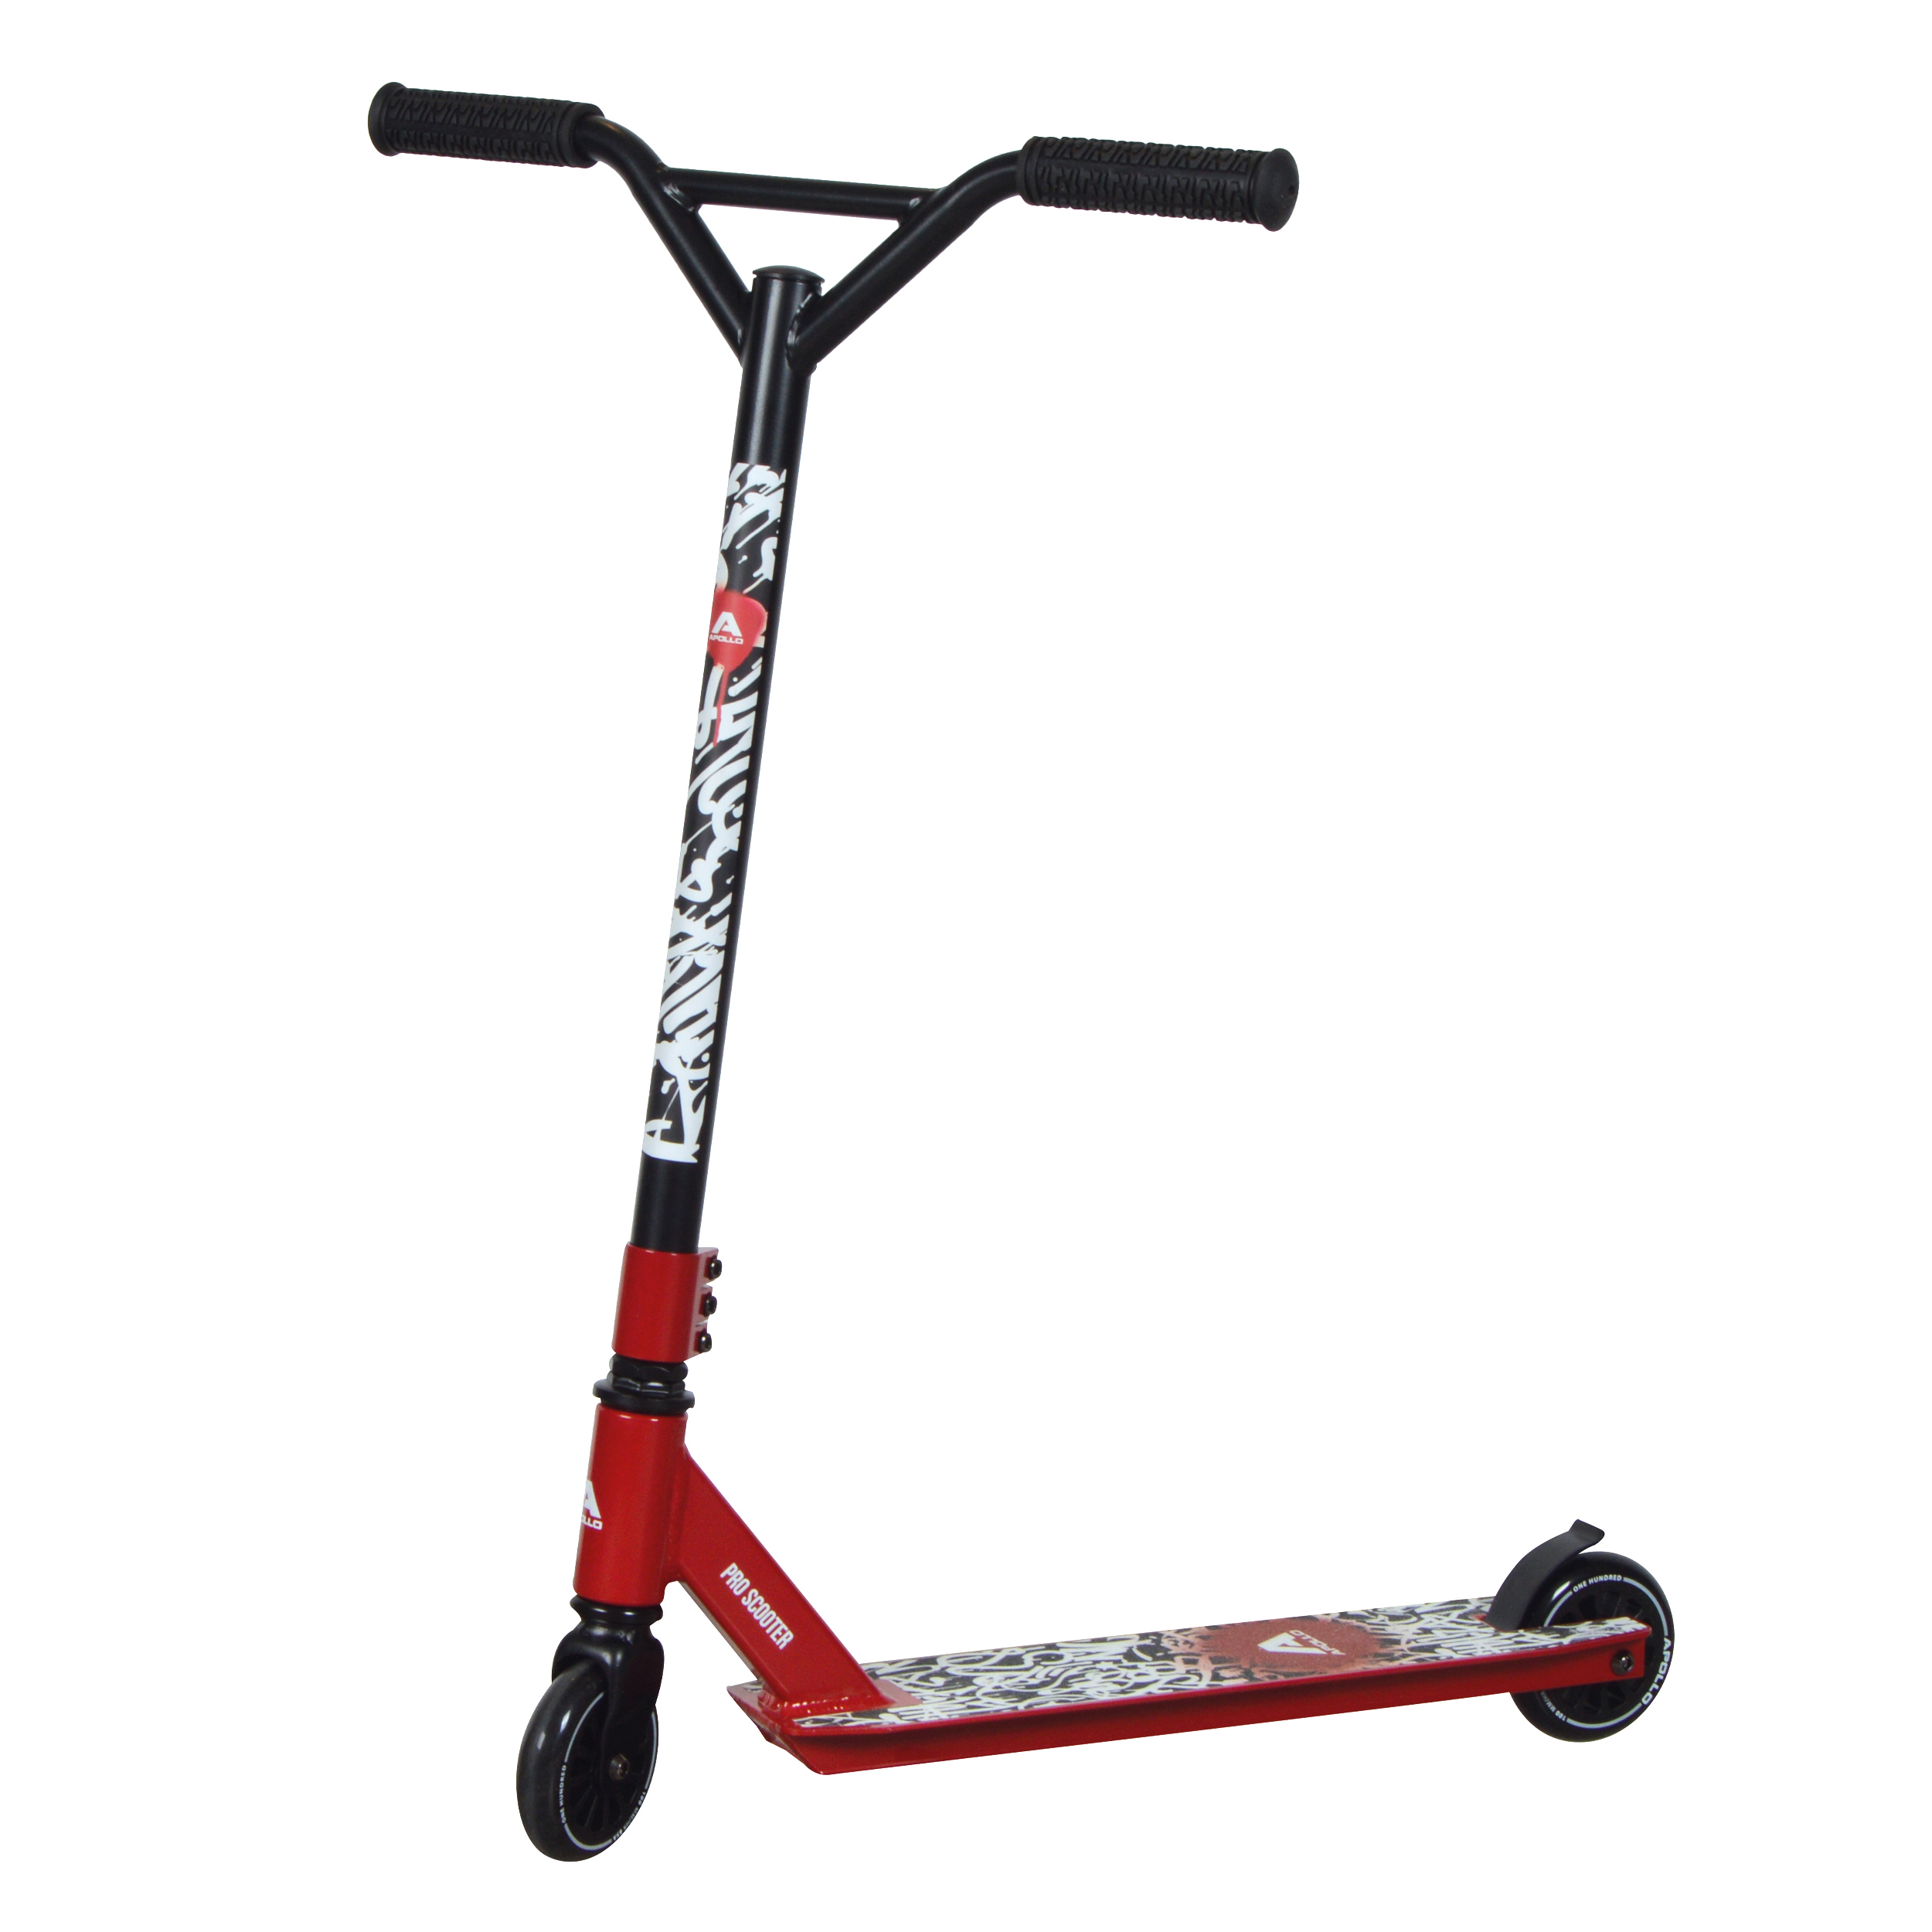 Apollo Stunt Scooter Graffiti Pro 4.0 - Rot